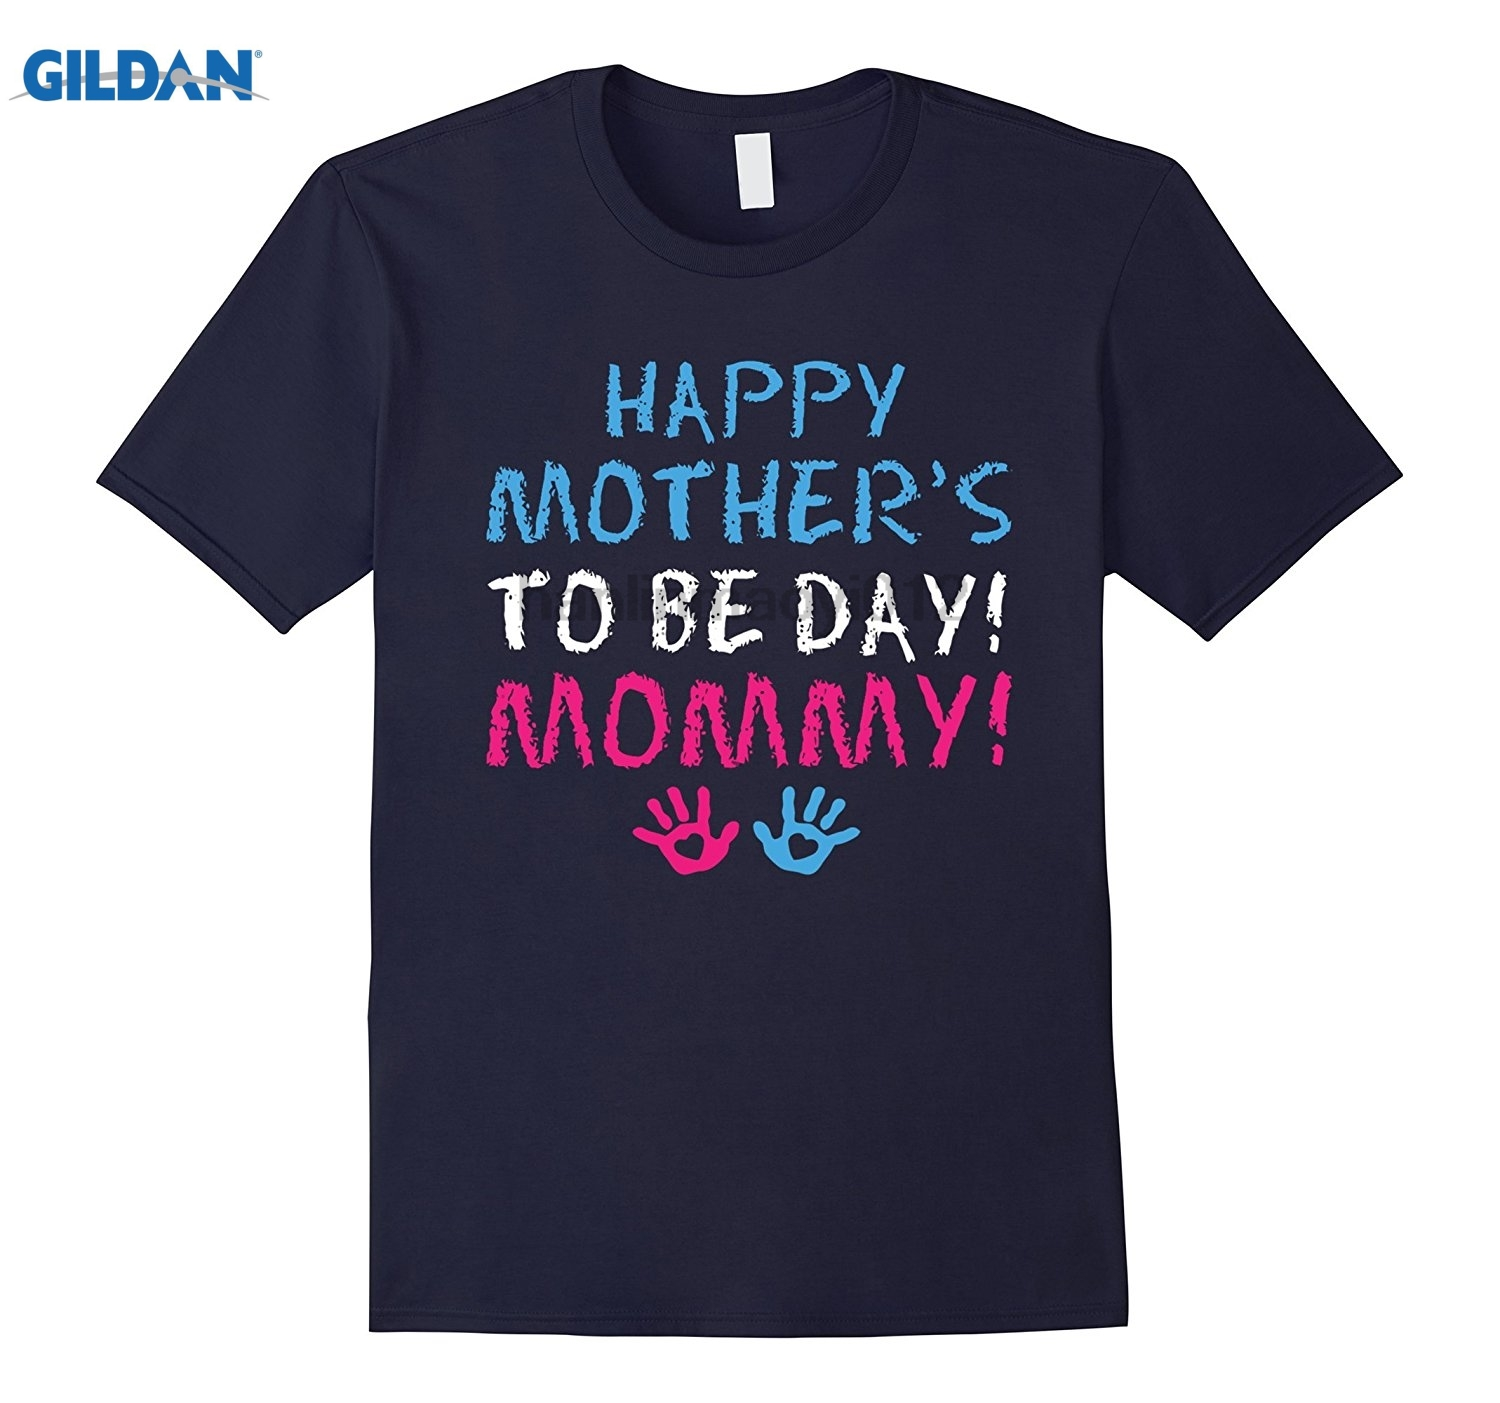 GILDAN Happy Mother To Be Day Mommy Cute Mothers Day Gift T Shirt sunglasses women T-shirt